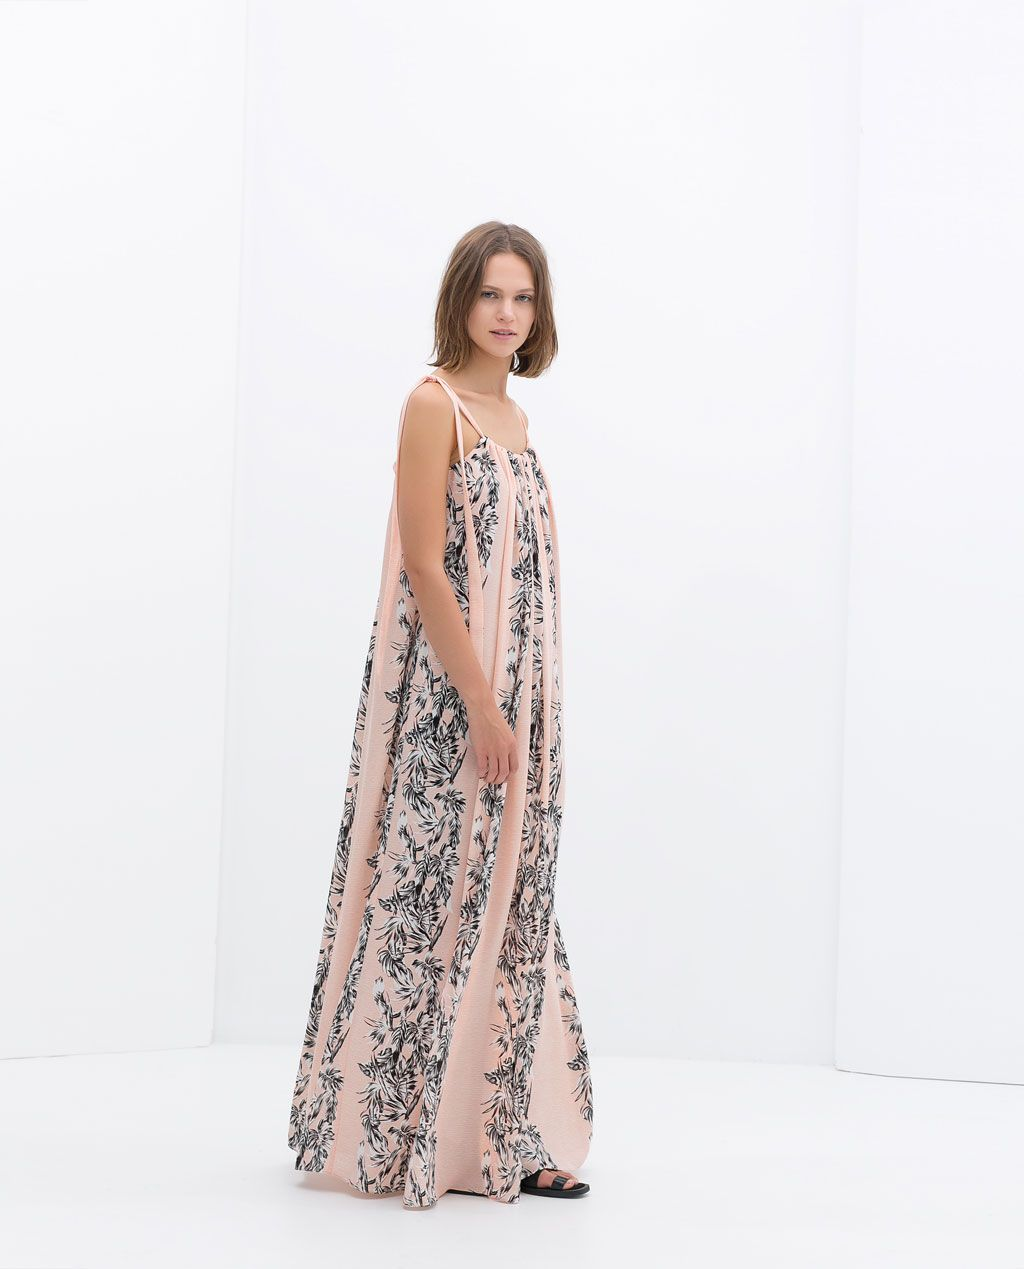 10 zara dresses you could rock at your wedding for 100 or less 10 zara dresses you could rock at your wedding for 100 or less plus a ombrellifo Choice Image